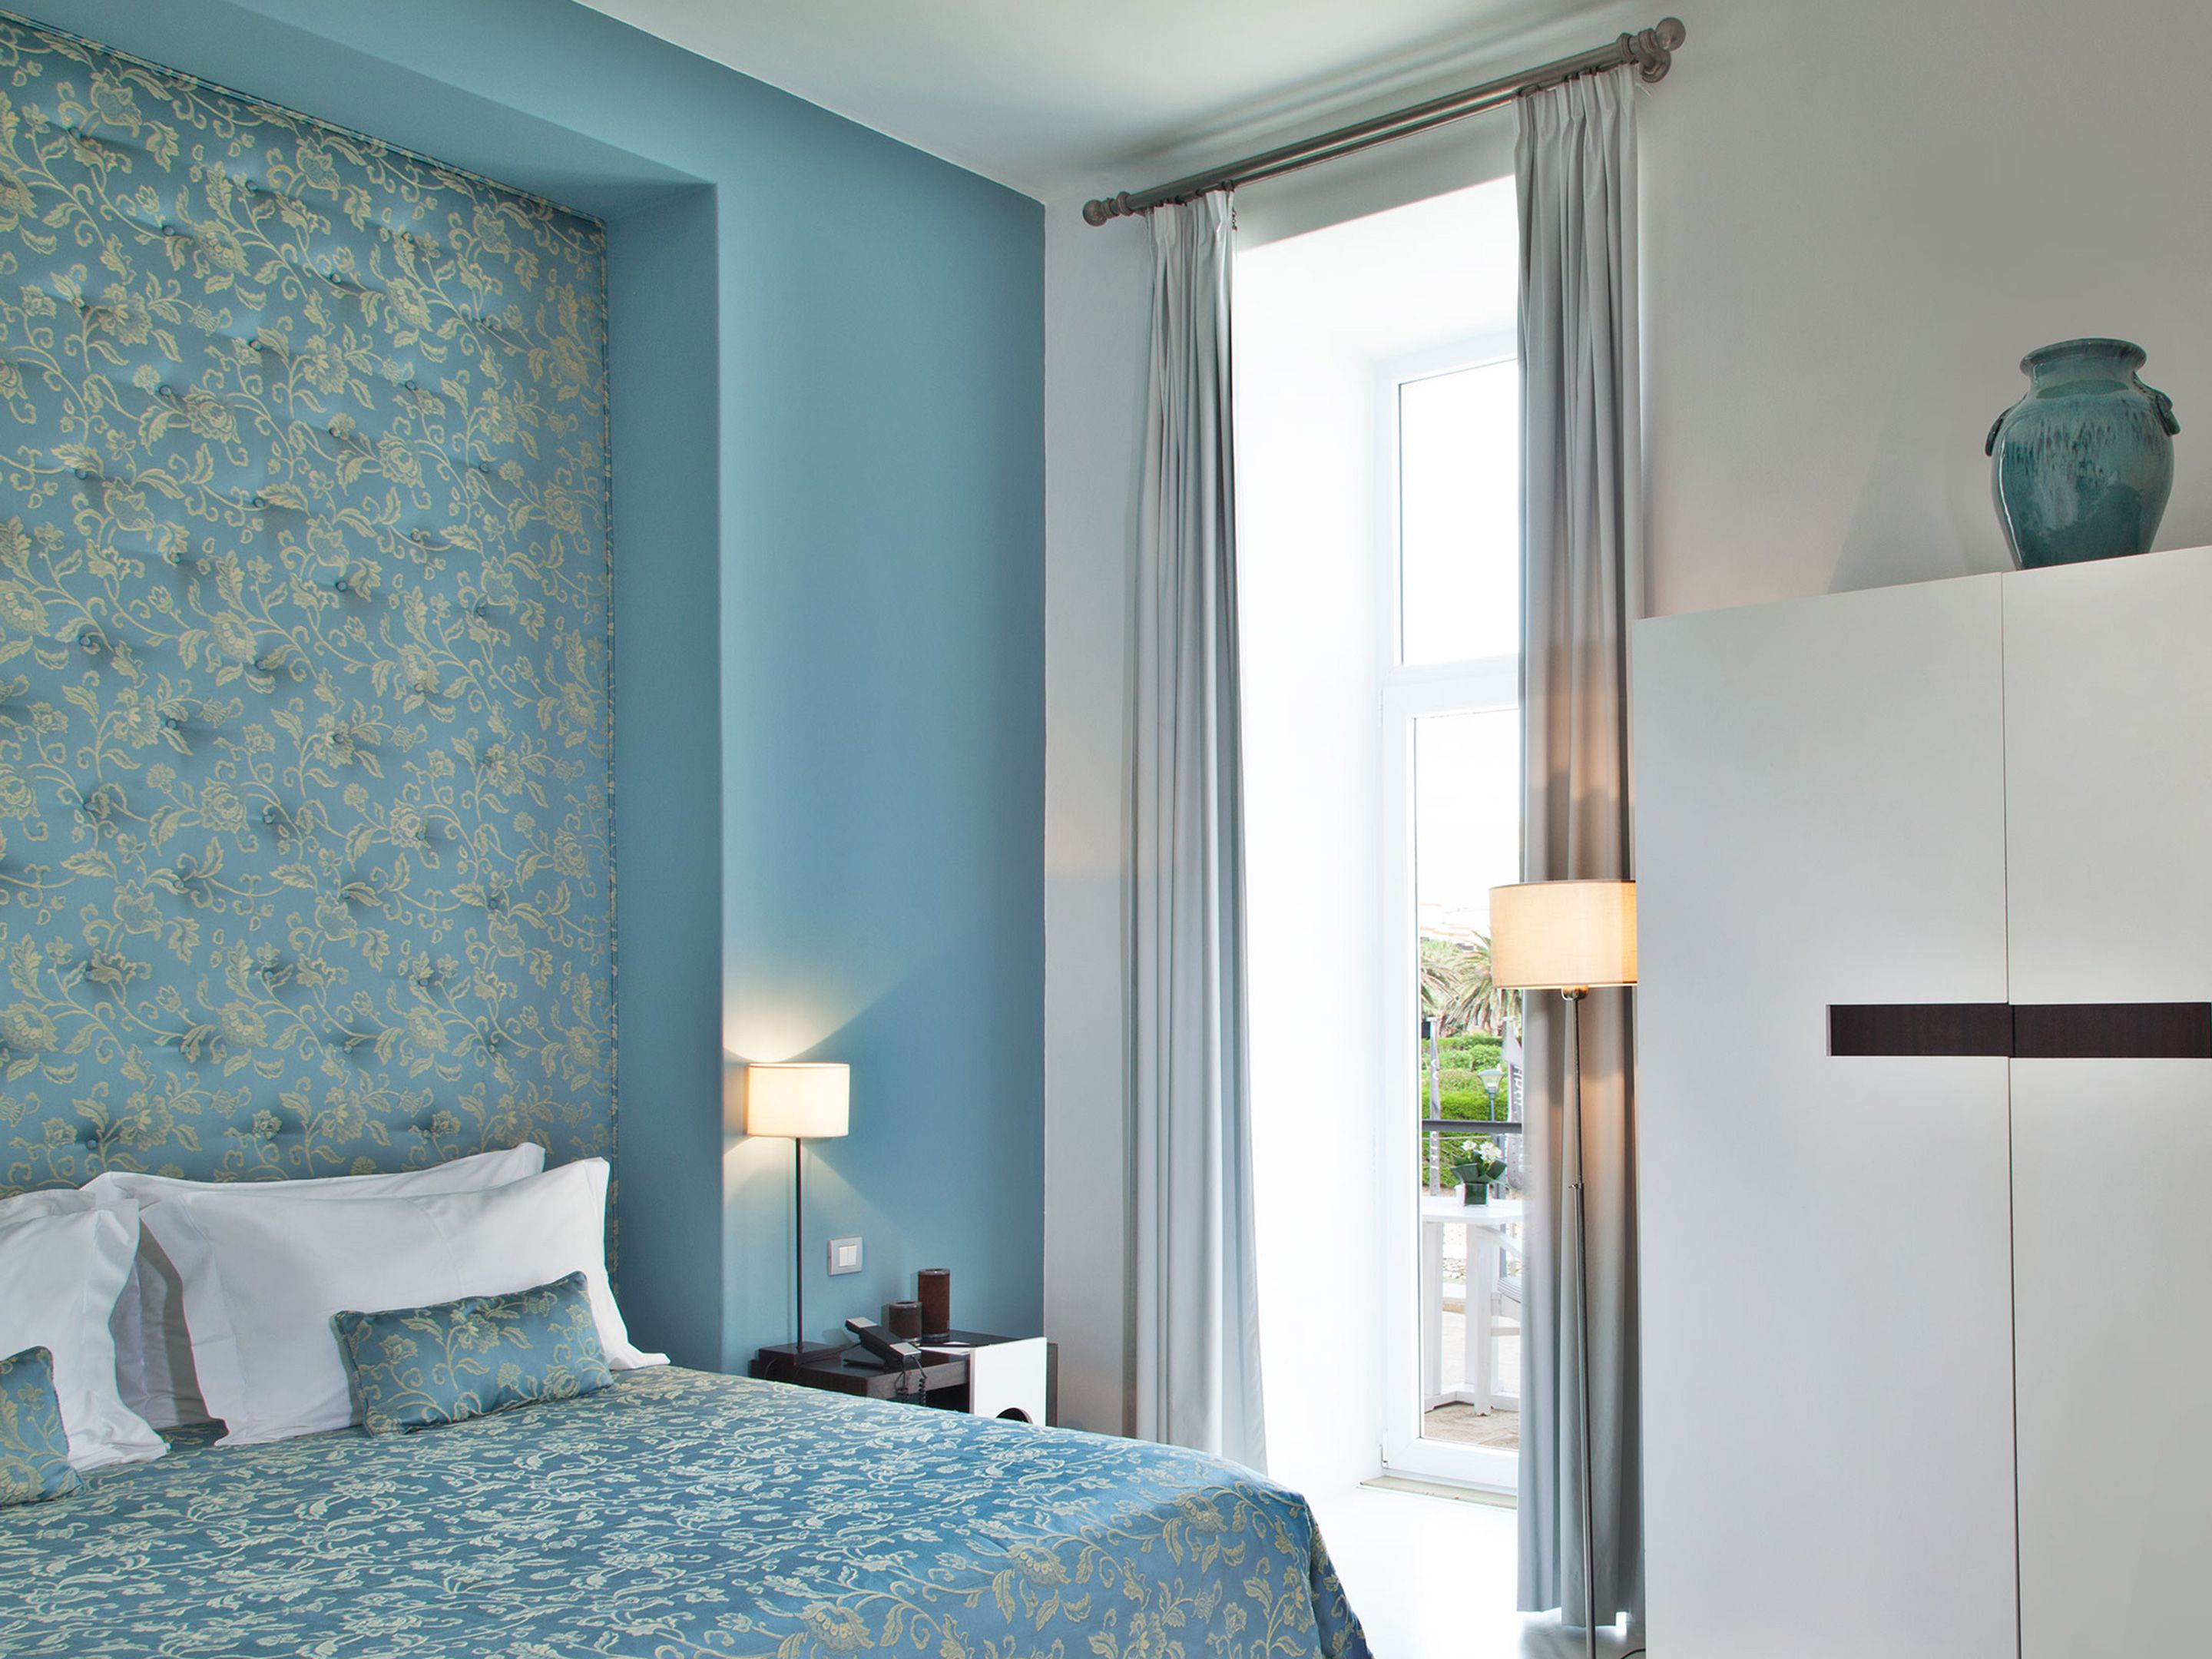 rooms & suites at farol in cascais, portugal - design hotels™